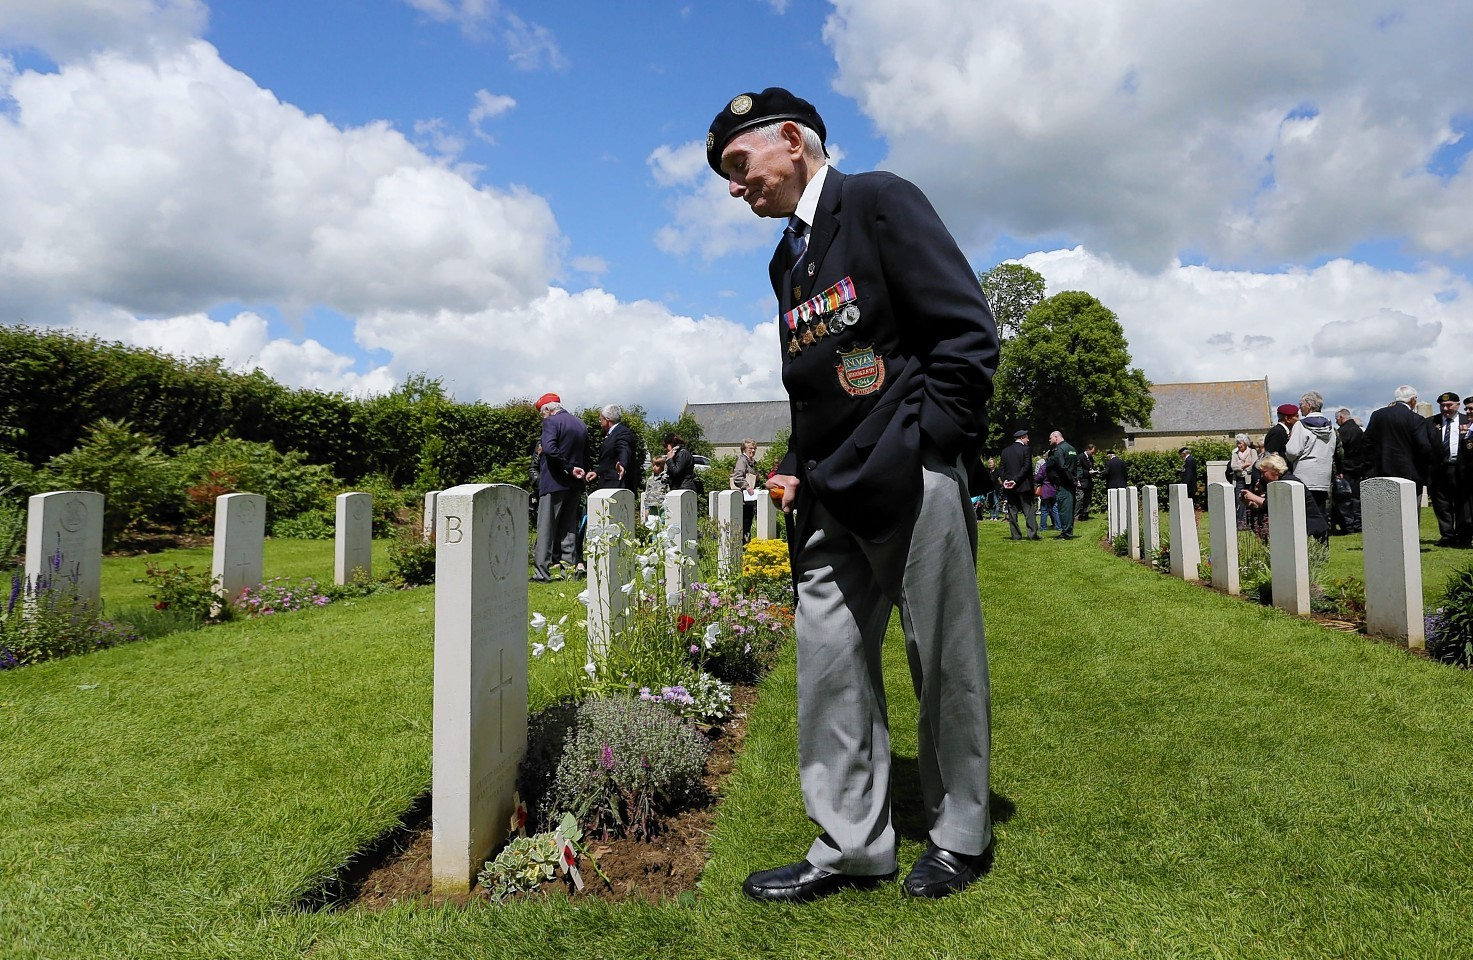 A member of the Normandy Veterans Association takes time to view the headstones at Jerusalem Cemetery in Chouain, France, during a commemorative ceremony to mark 70th anniversary of the D-Day landings during World War II.